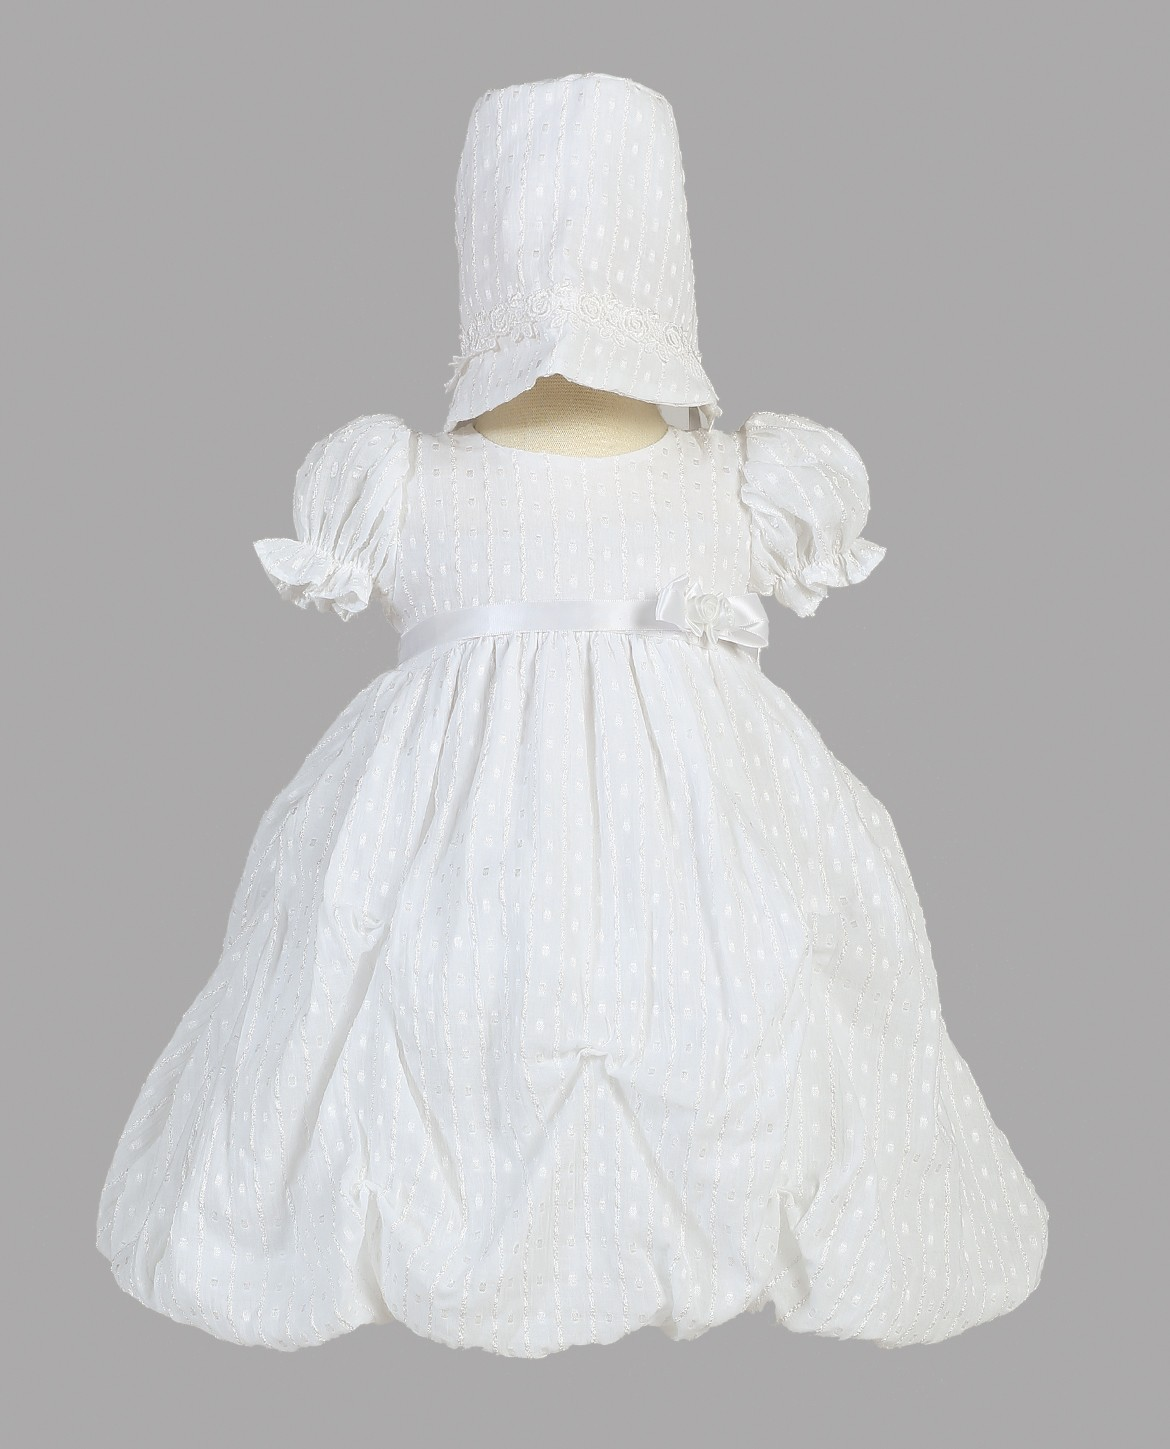 Girls Short Cotton Gathered Christening Dress